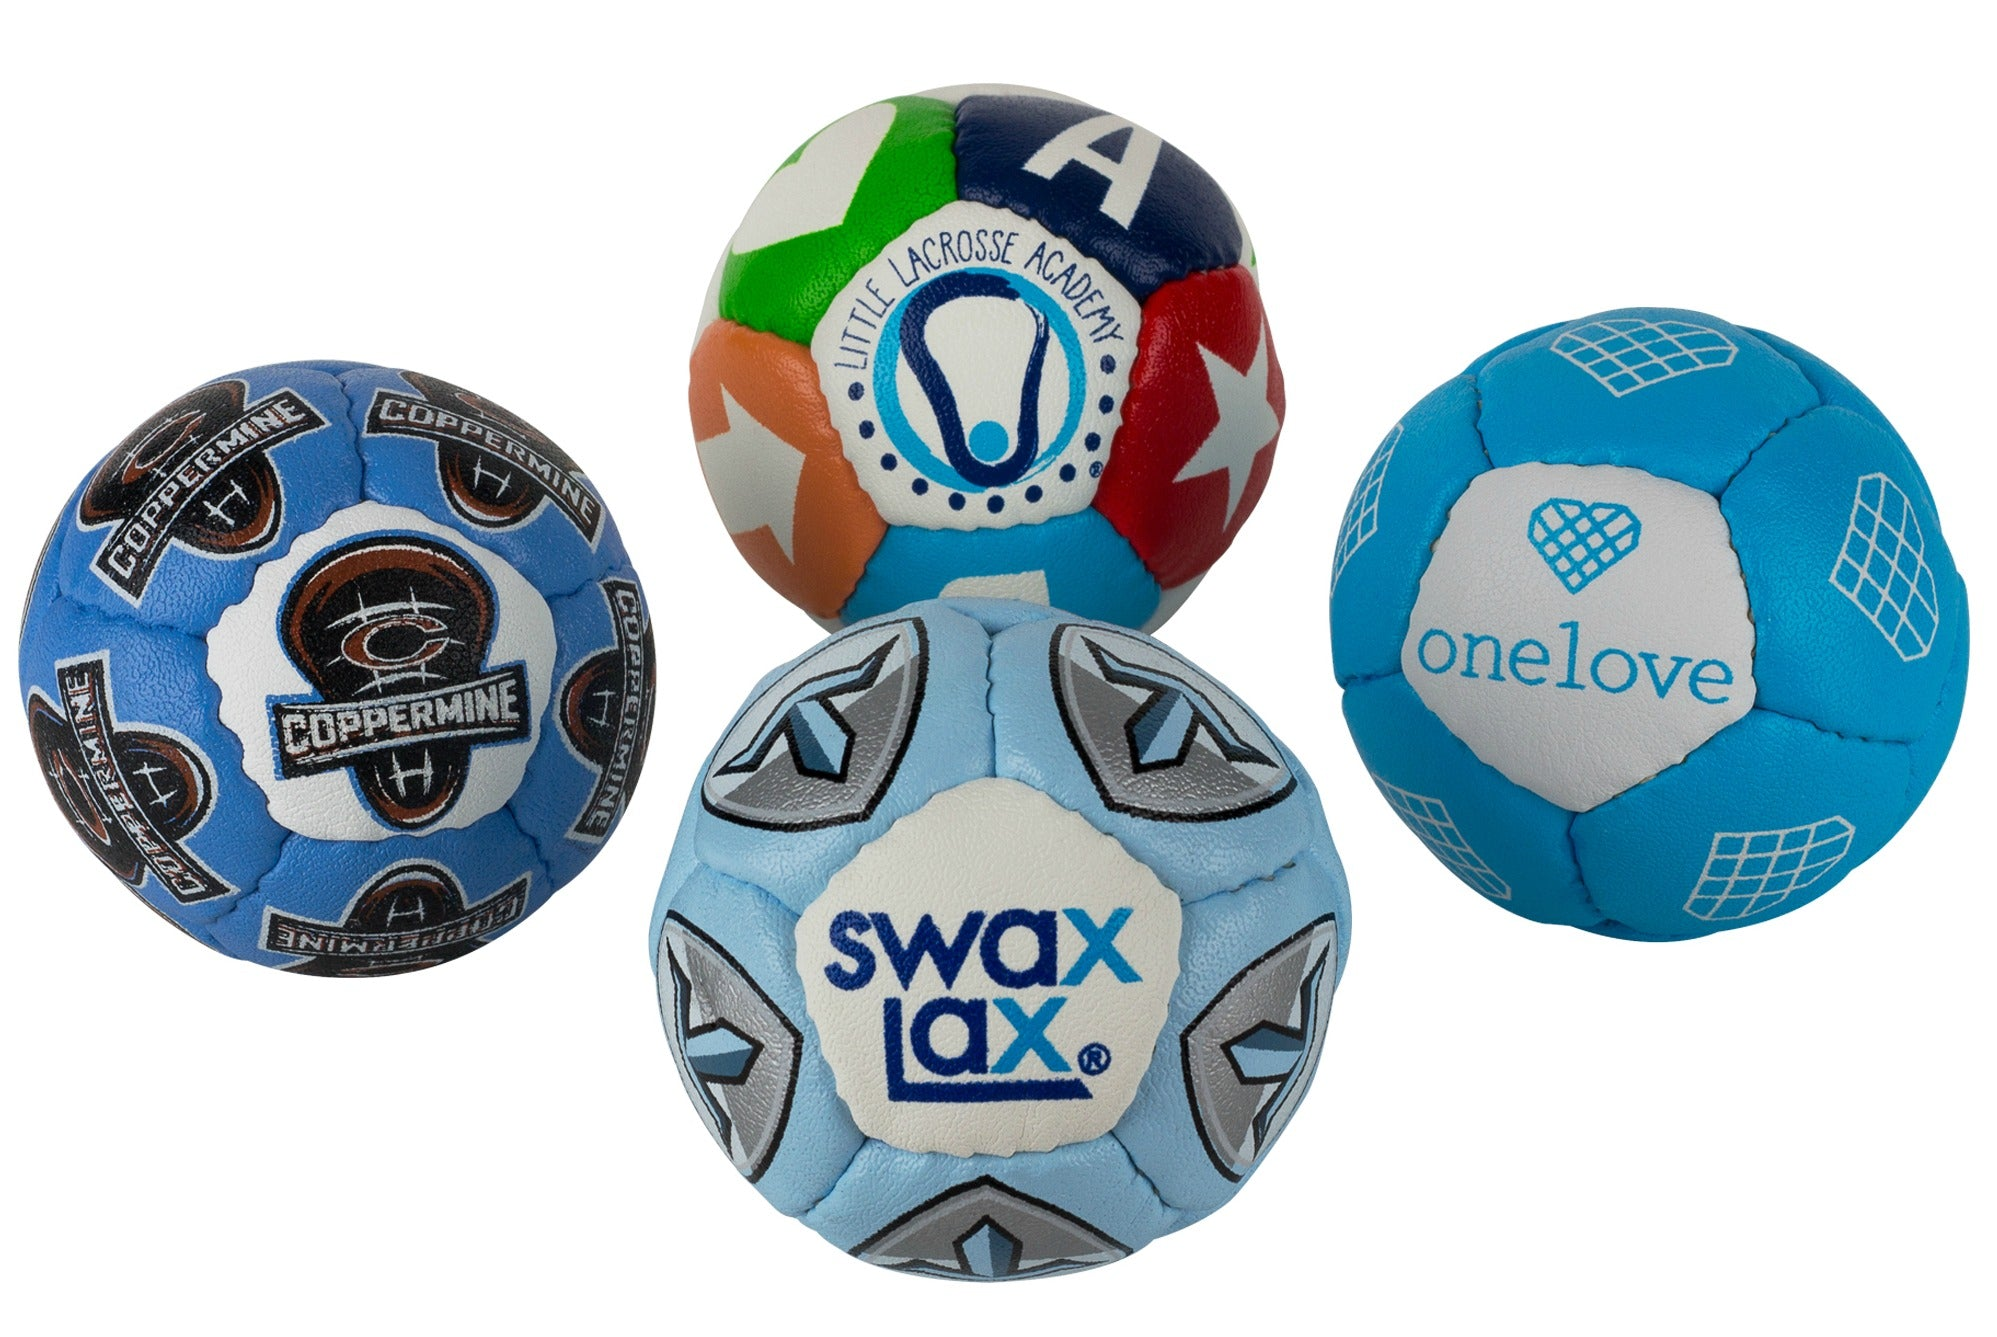 Customized Swax Lax lacrosse training balls for teams, booster clubs, fundraisers, sports stores